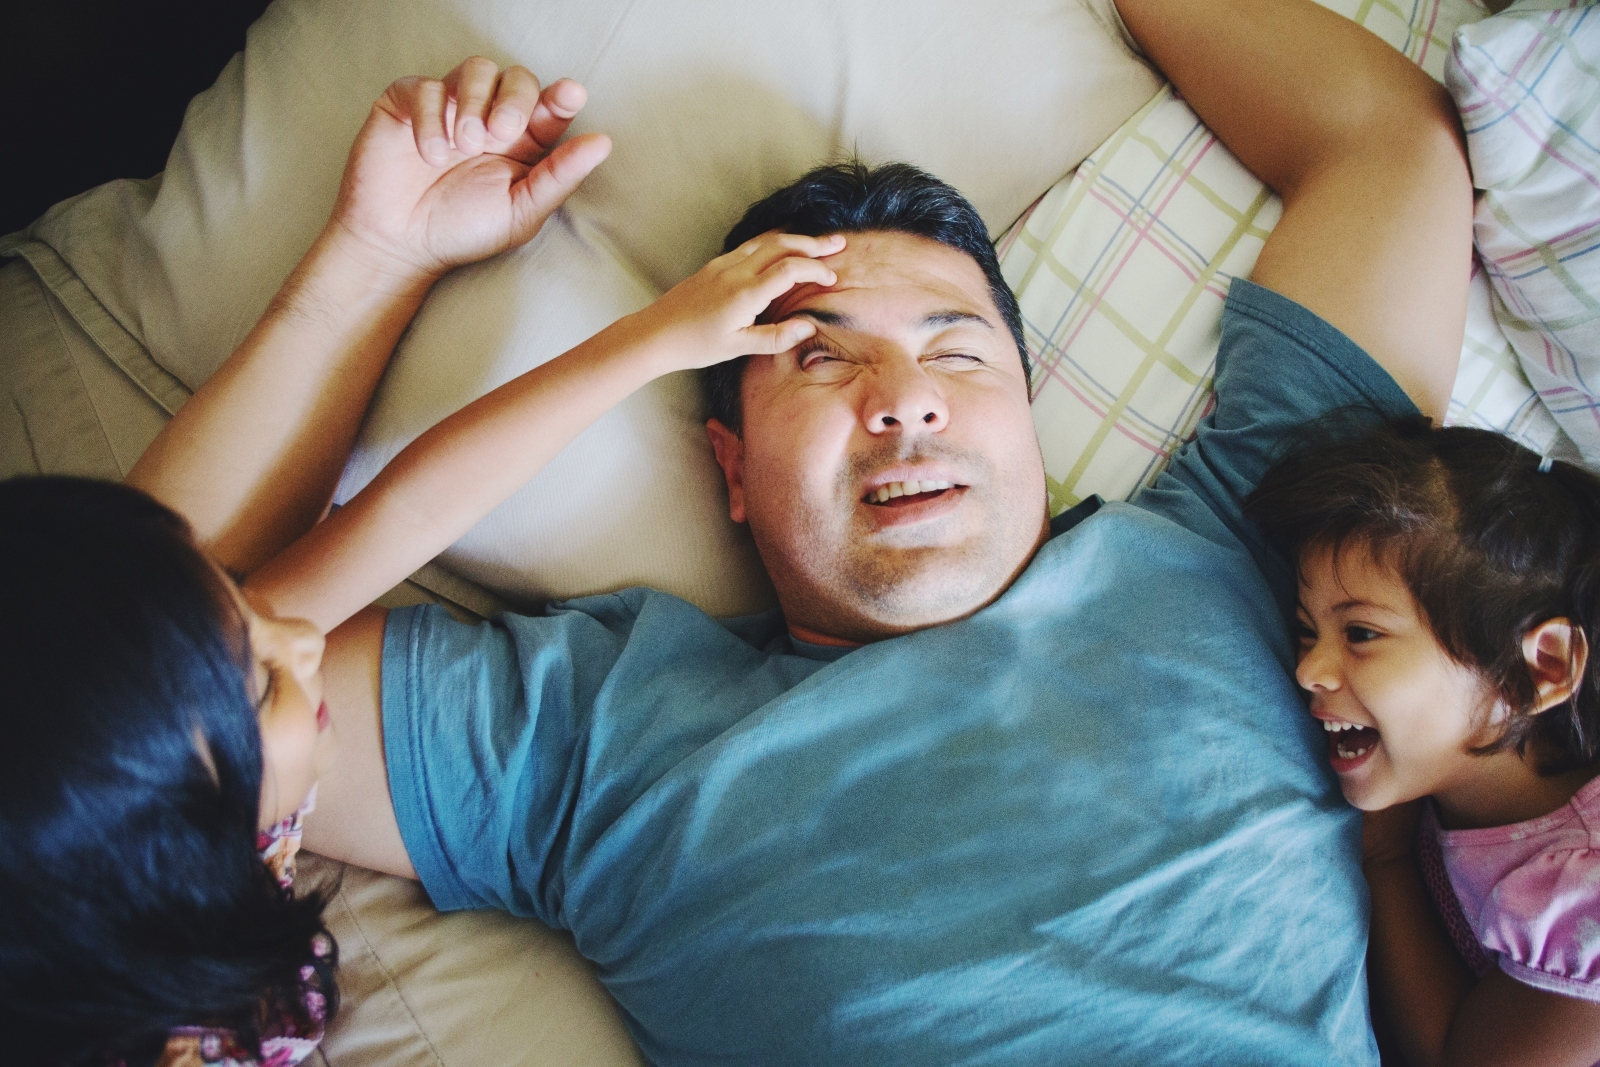 Dad in bed with kids